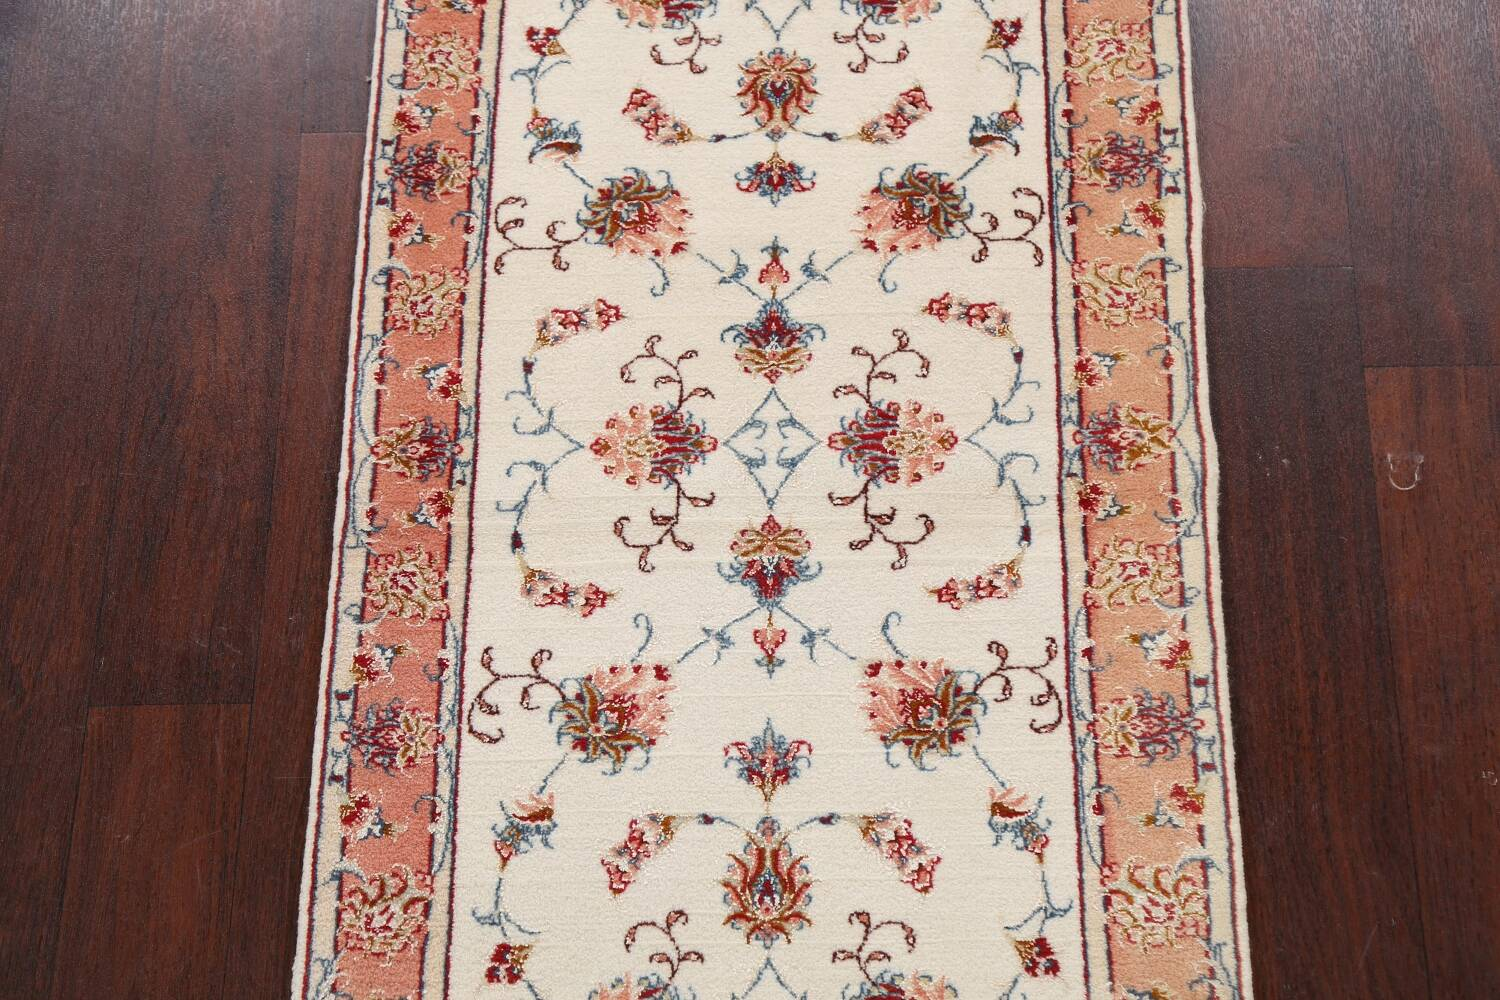 Vegetable Dye Wool/ Silk Floral Tabriz Persian Area Rug 2x4 image 3